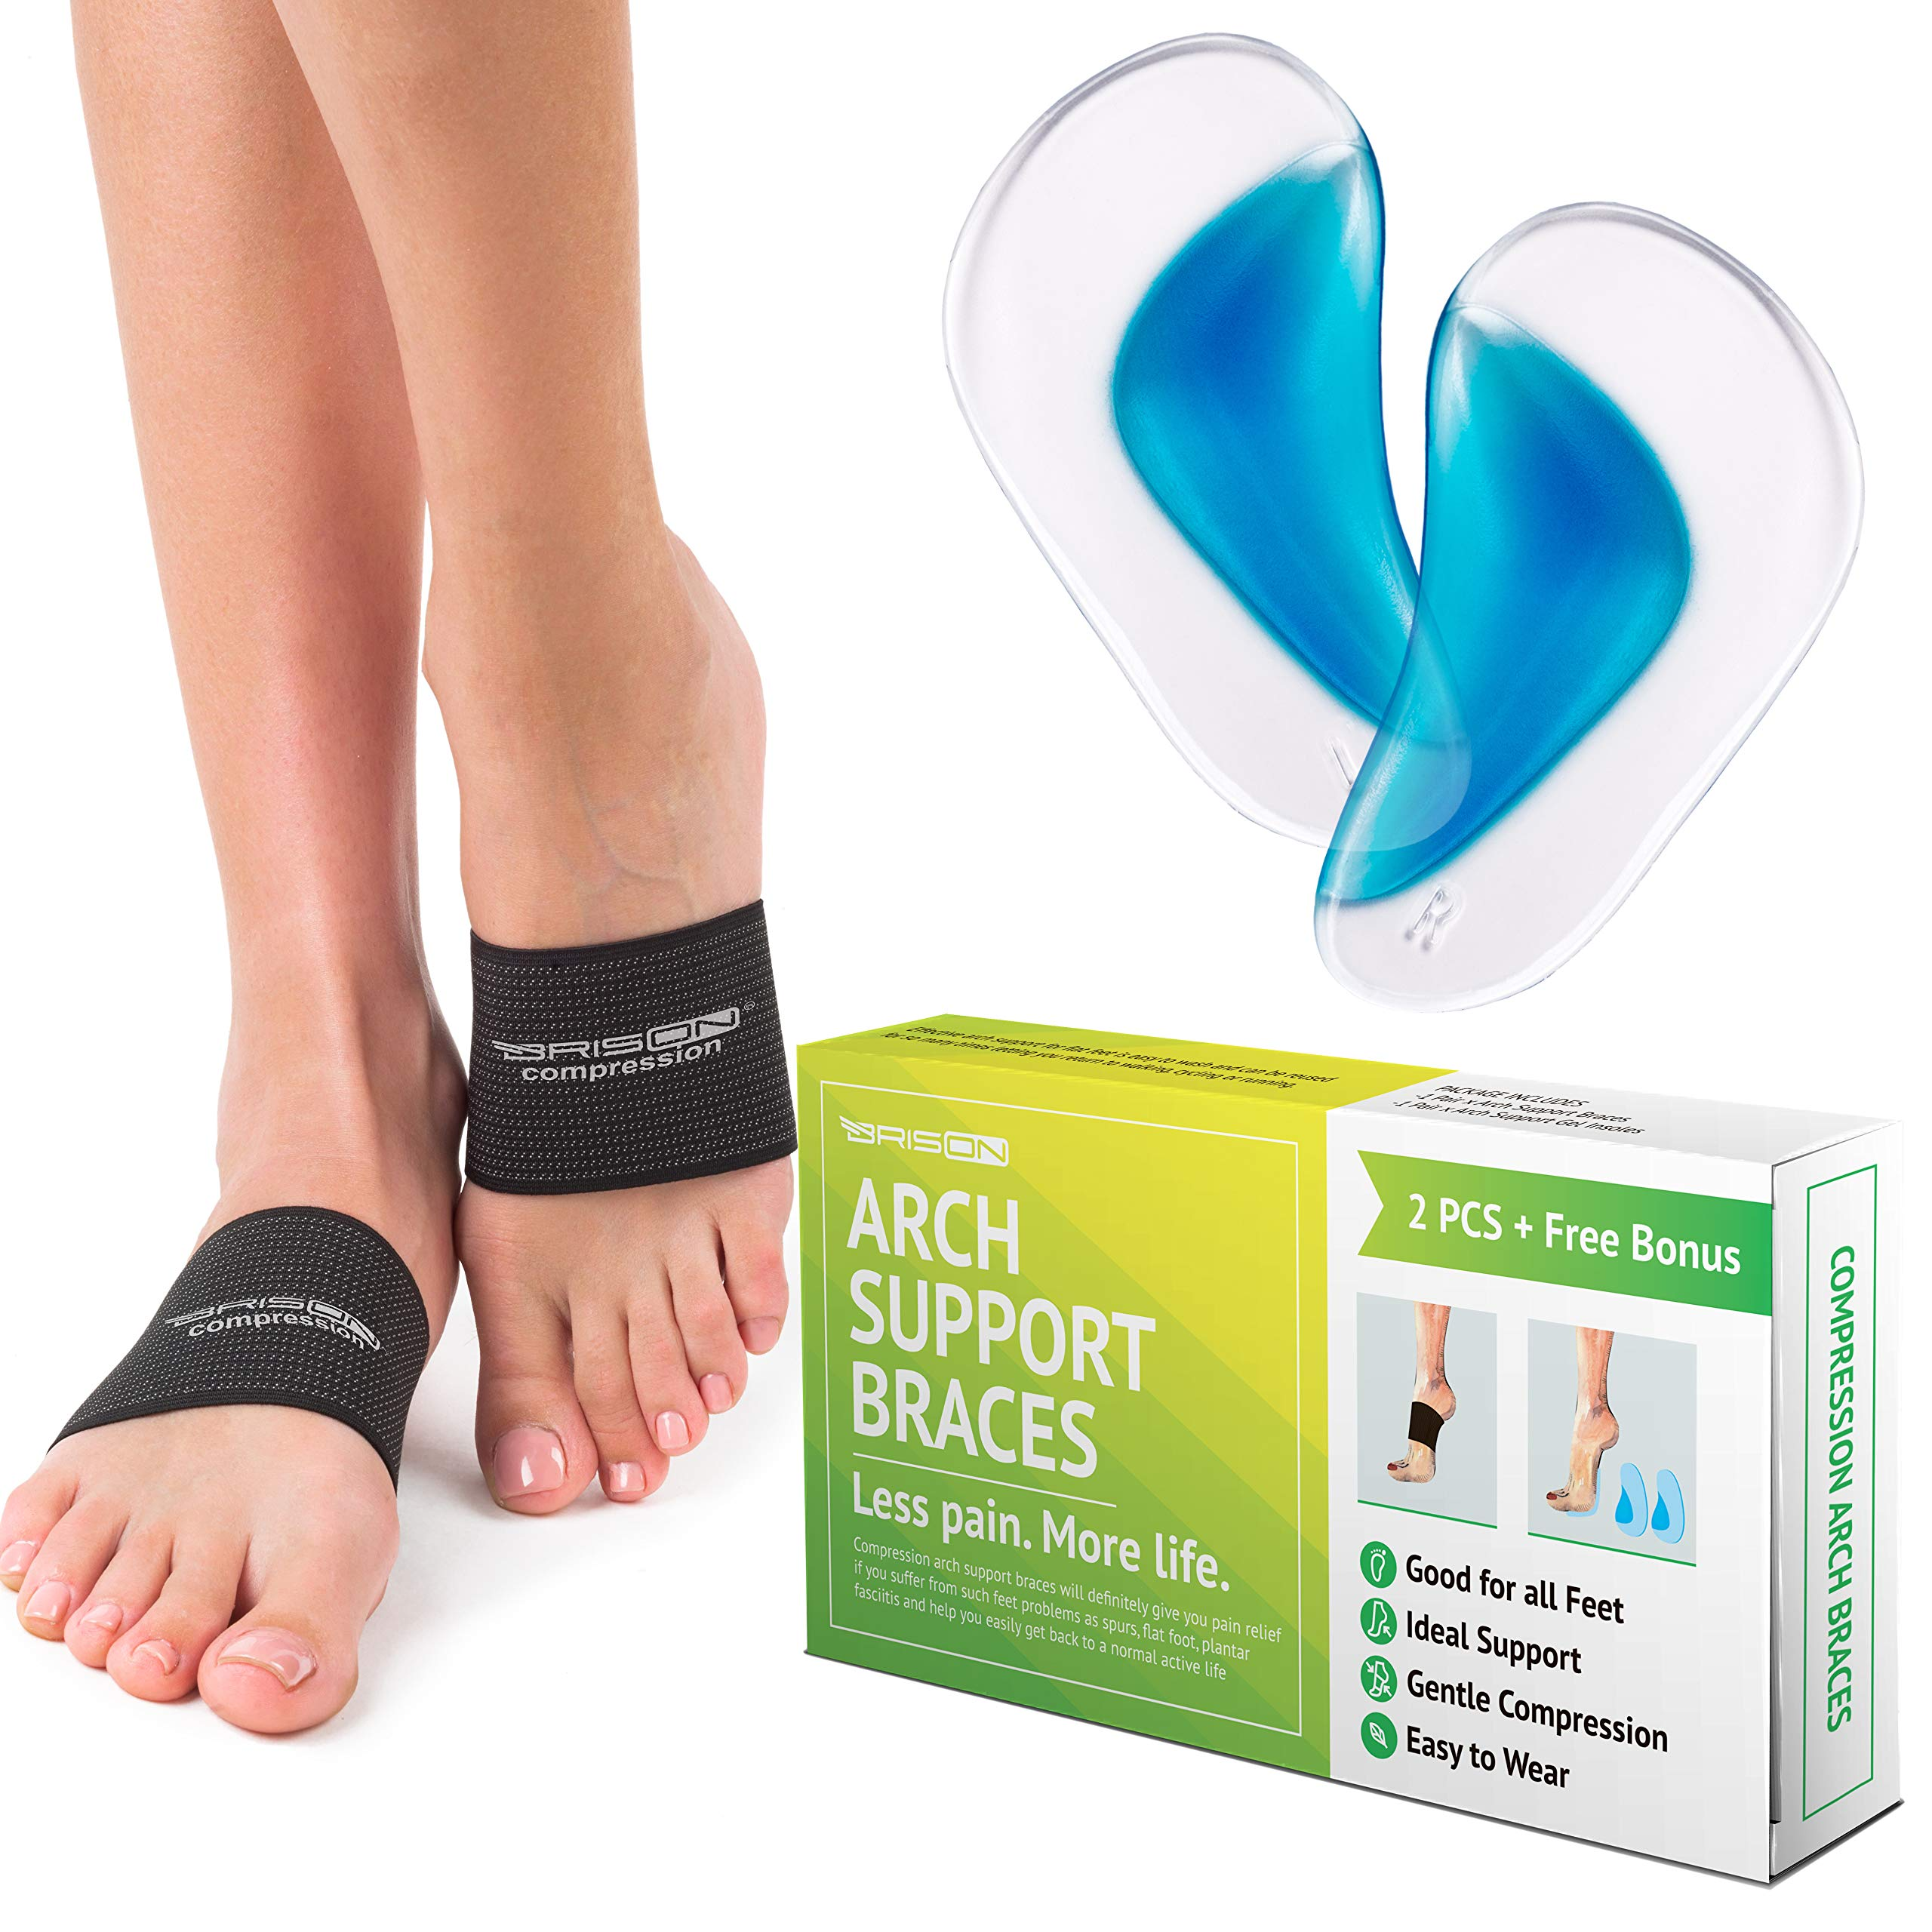 Compression Arch Support Braces for Men Women - Elastic Reusable Plantar Fasciitis Ankle Arch Sleeves Socks for Flat Foot Heel Spurs High/Low/Fallen Arches Heel Pain Relief - Black